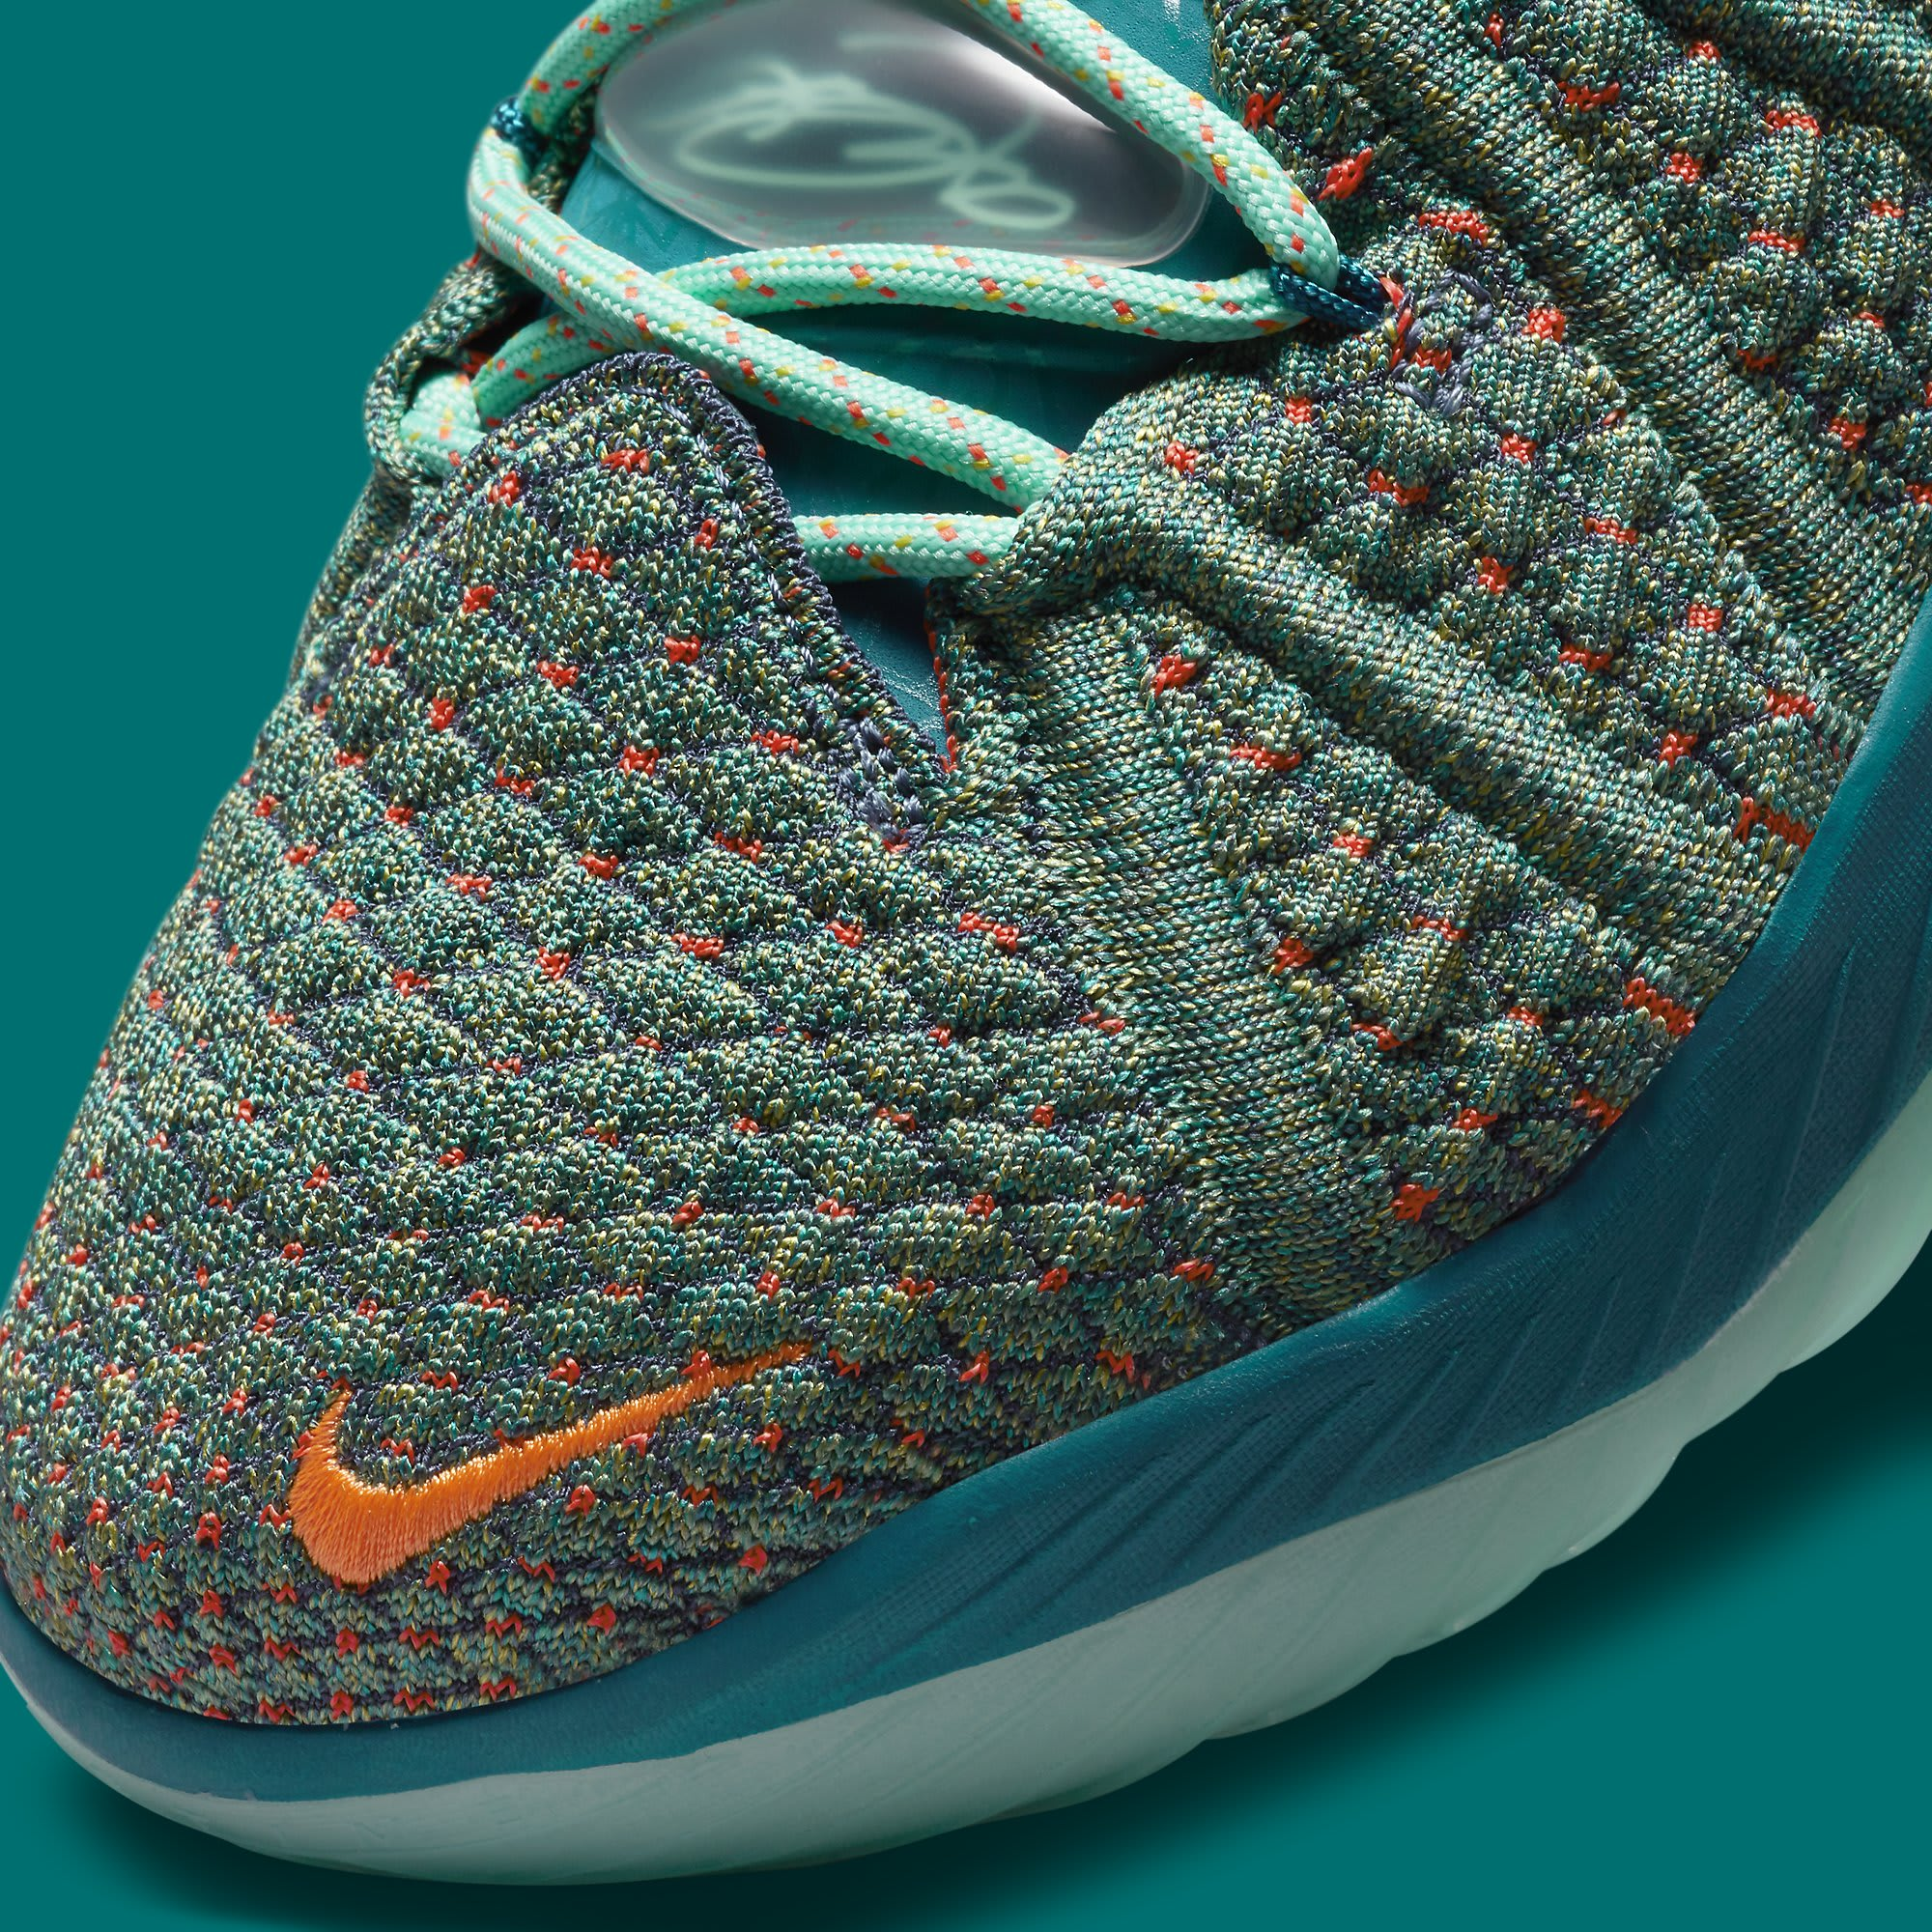 Nike LeBron 18 We Are Family Release Date CQ9283-300 Toe Detail